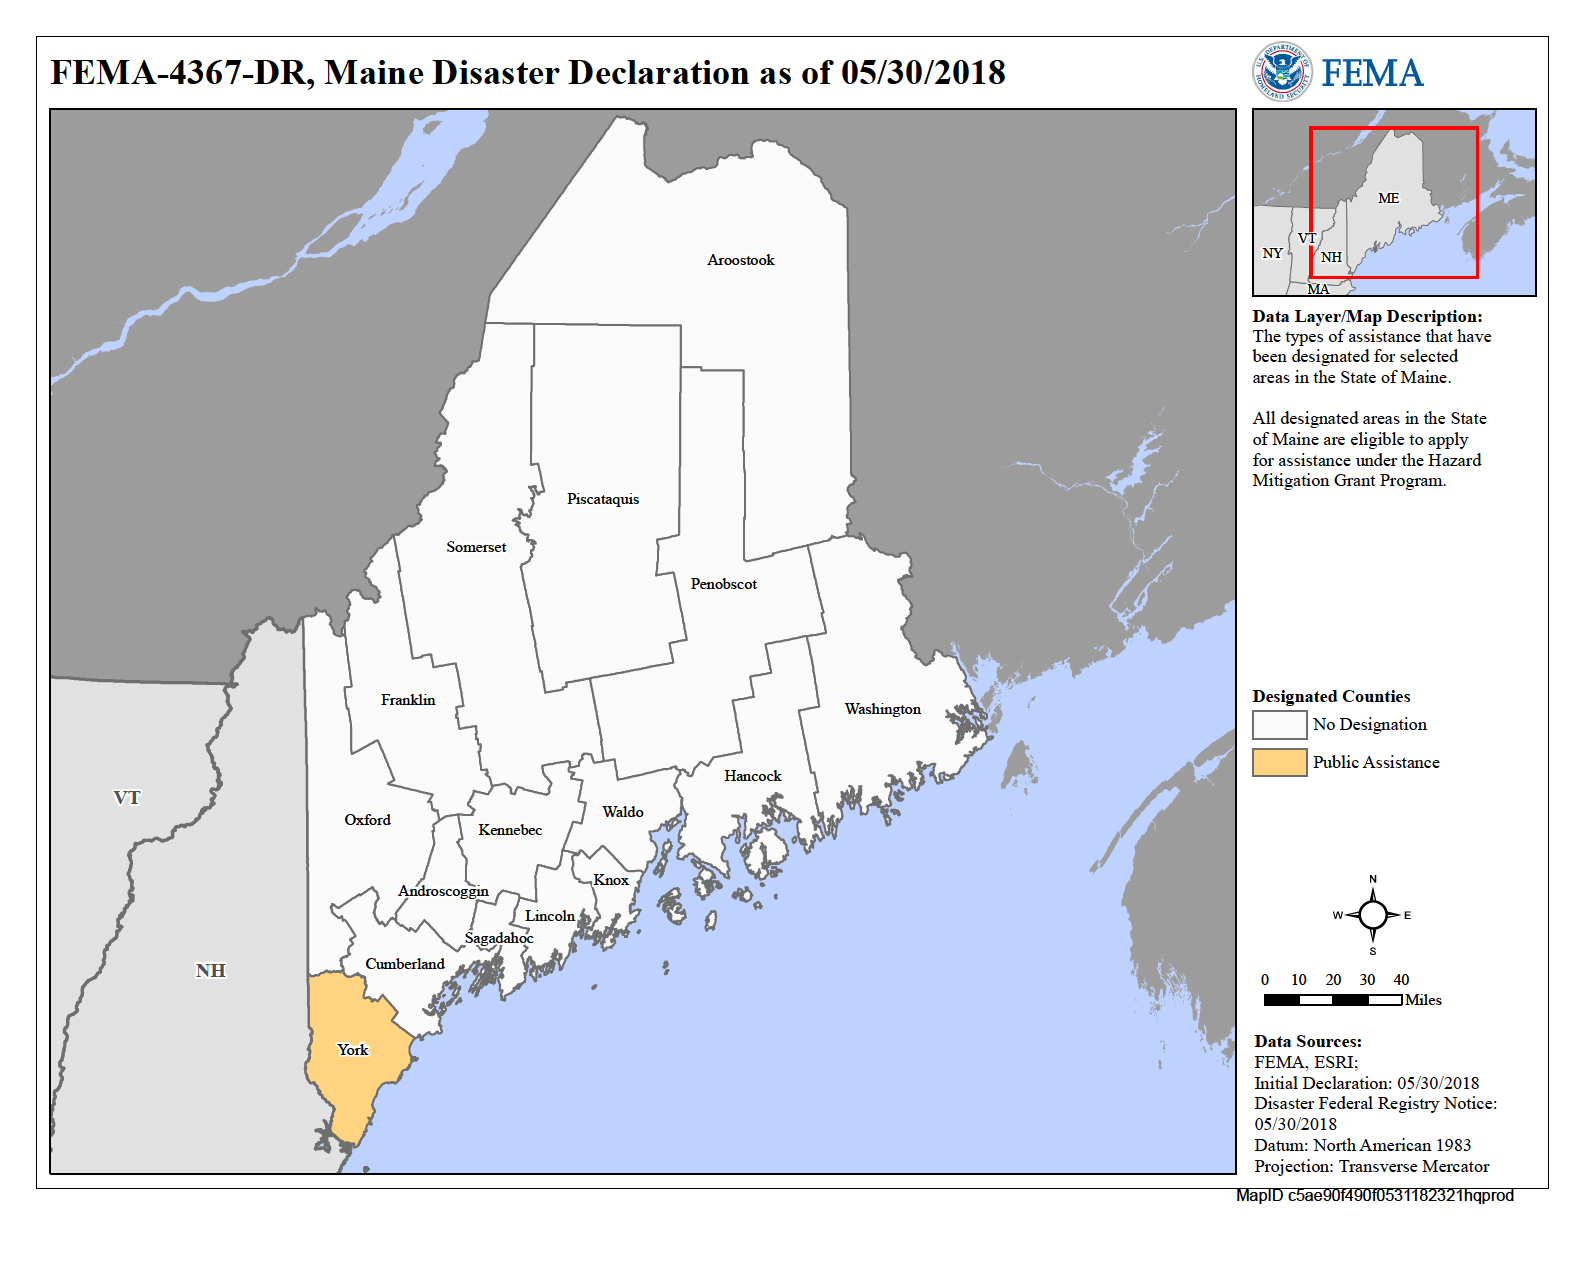 FEMA Declared disaster relief